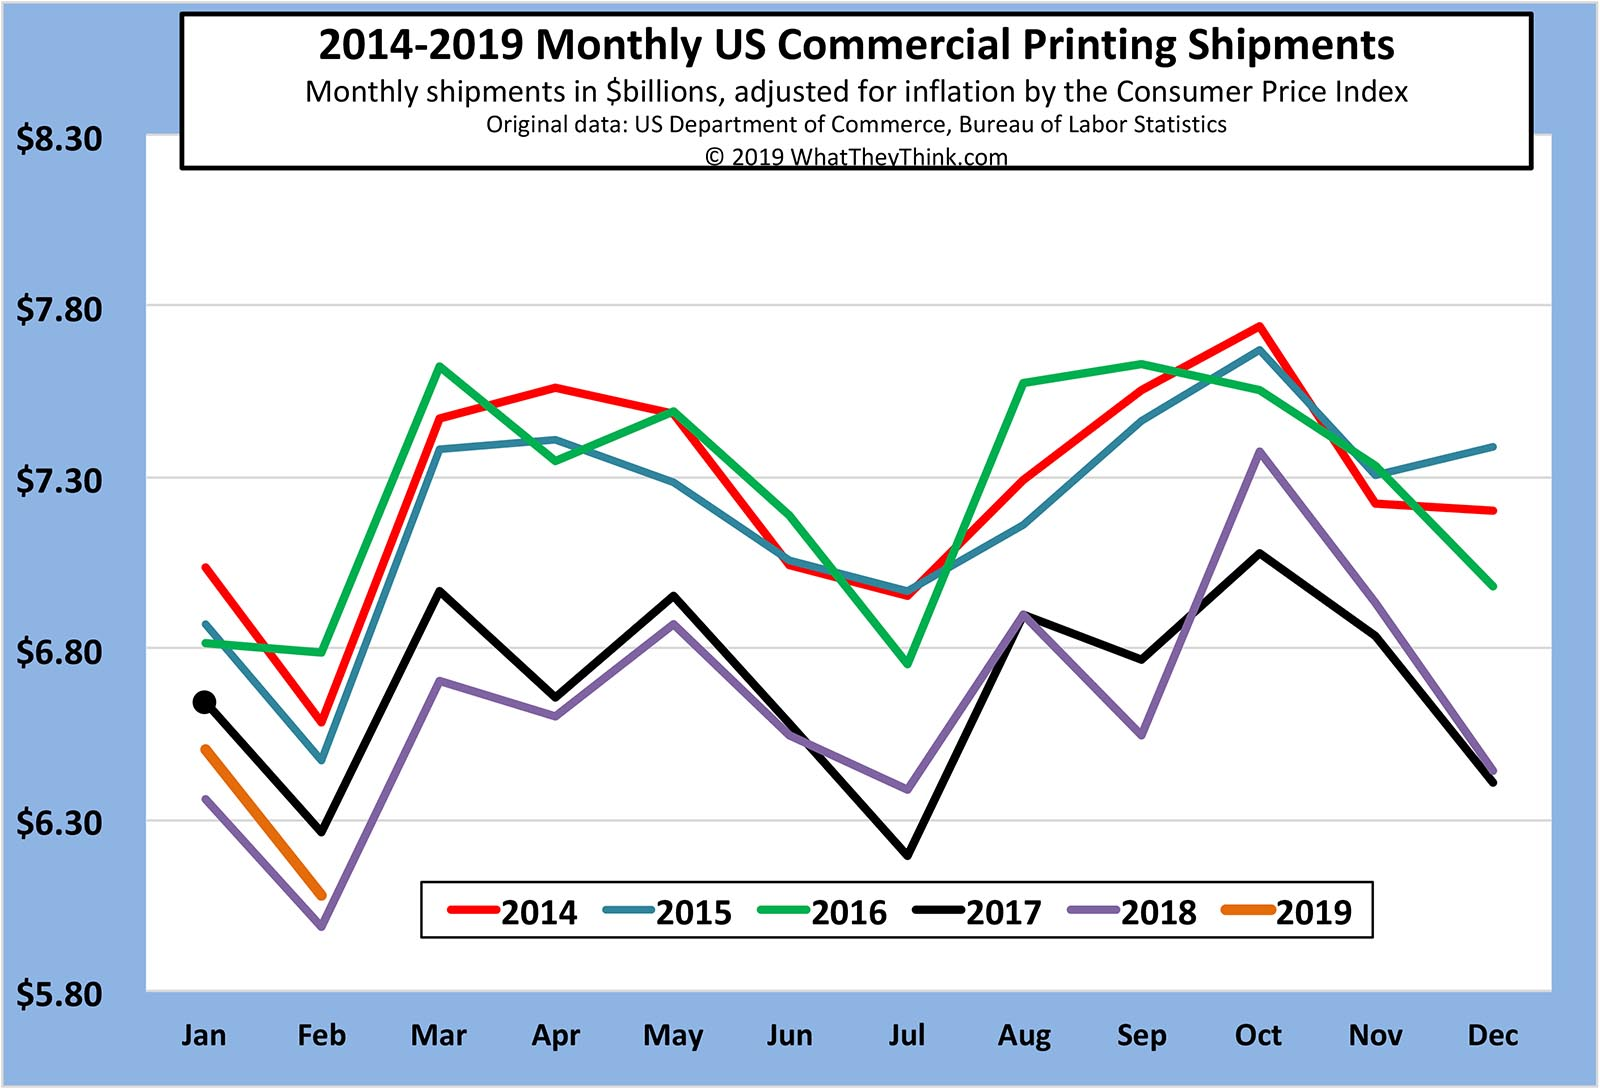 February 2019 Printing Shipments: Starting the Year Off on the Right Foot